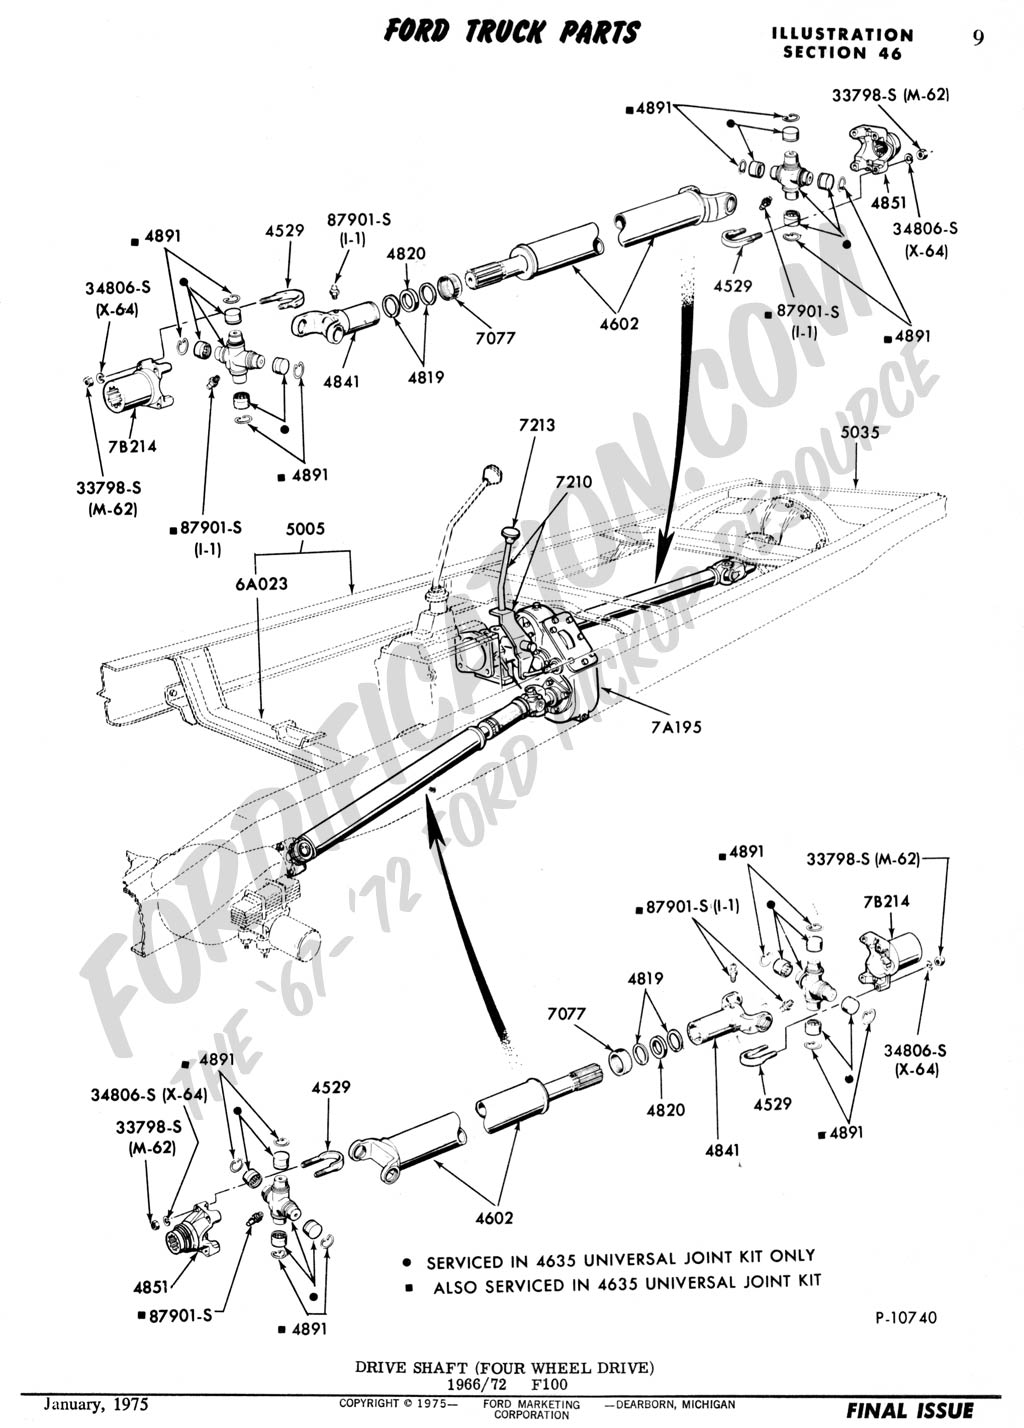 1365351 Installing C6 Rebuilt Transmission Crossmember Problems additionally 1965 Ford Mustang Door Latch Diagram further Willys Jeep Wheel Bearings  ponents likewise 1978 Ford F150 Fuse Box Diagram likewise Yale Hoist Wiring Diagram. on ford f100